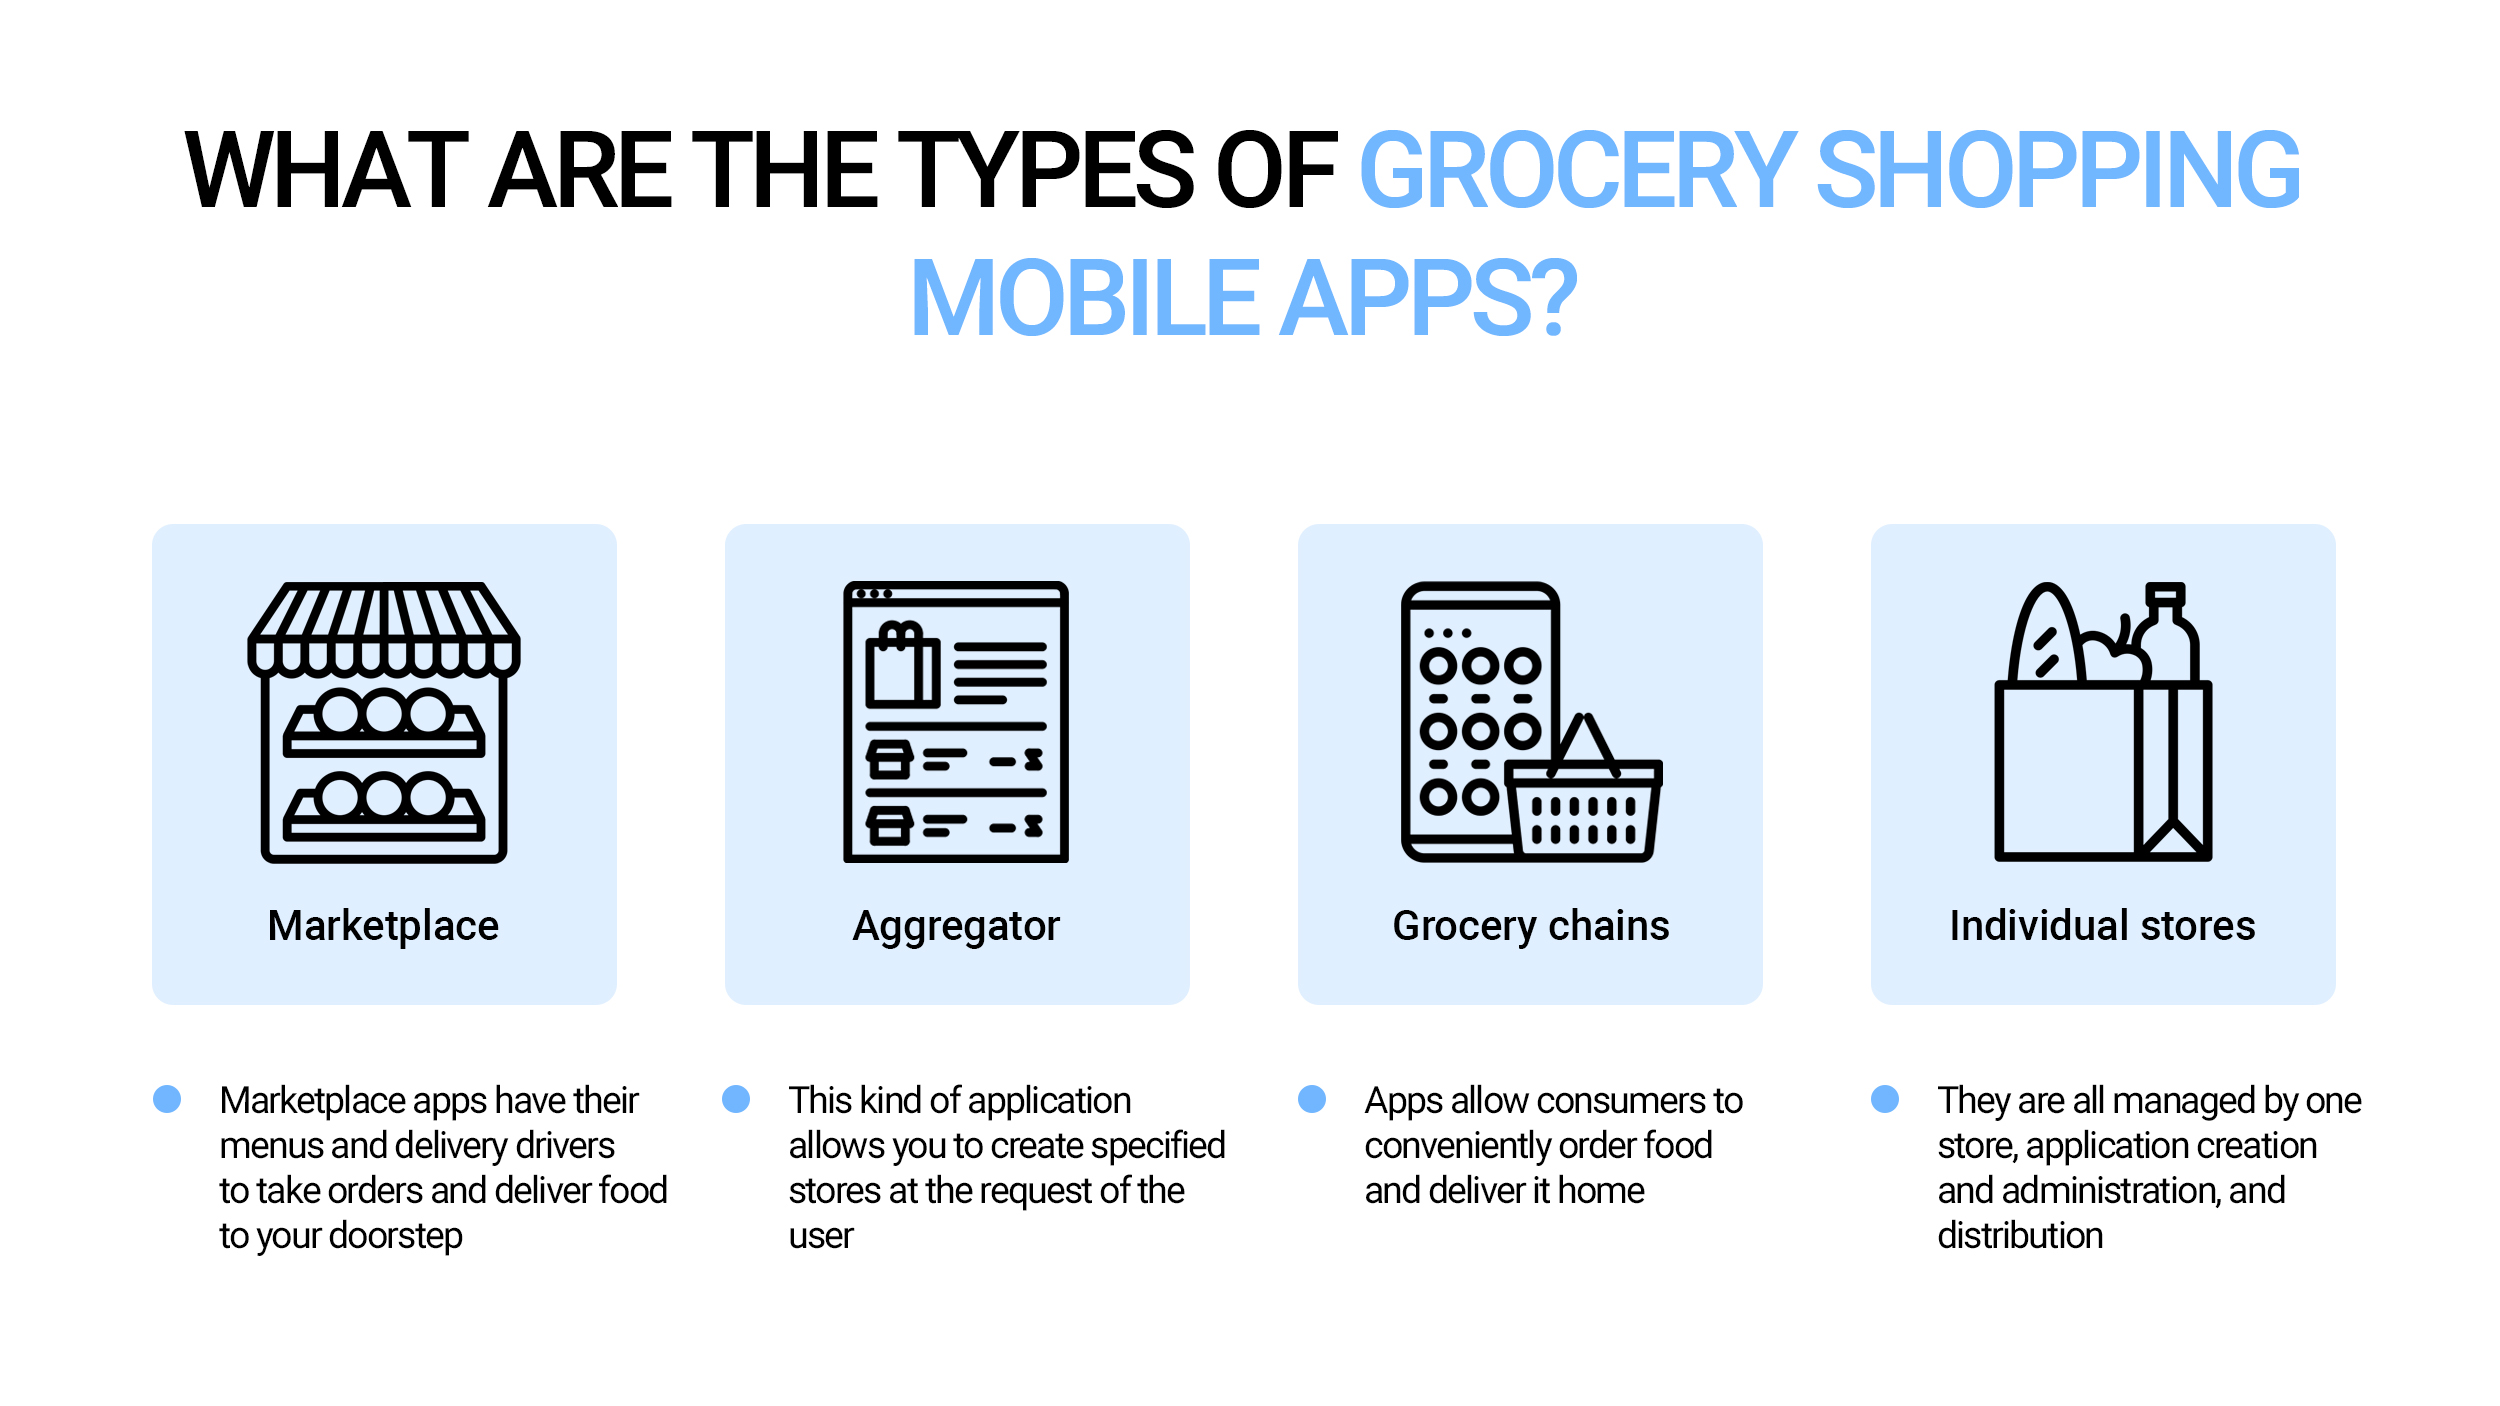 What are the types of grocery shopping mobile apps